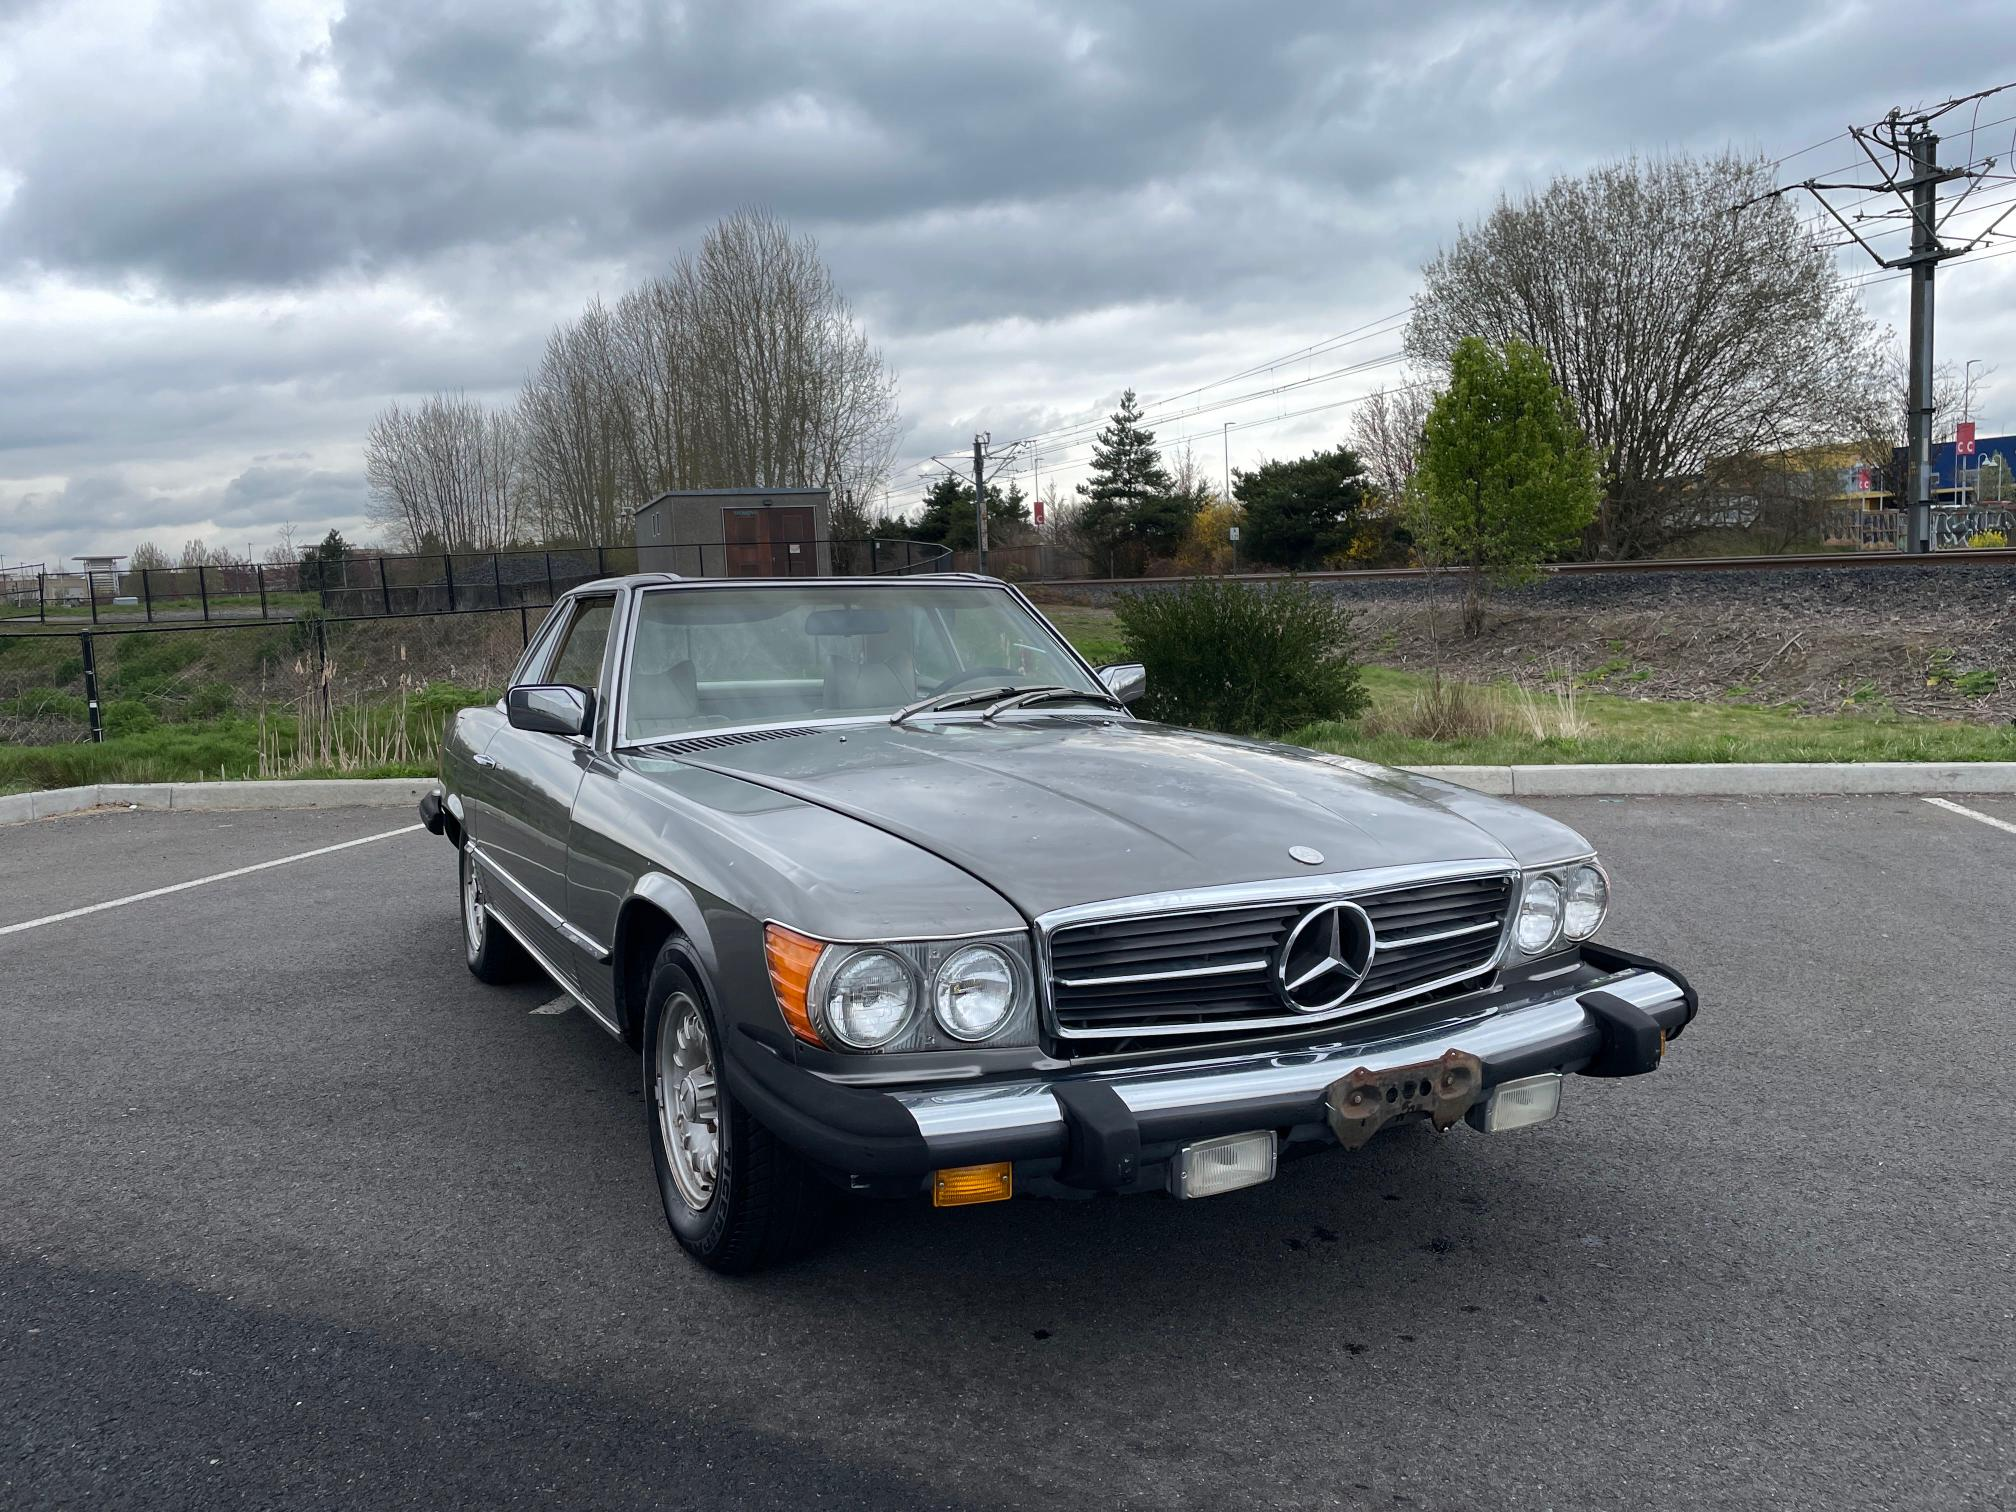 Mercedes-Benz 450 SL salvage cars for sale: 1978 Mercedes-Benz 450 SL